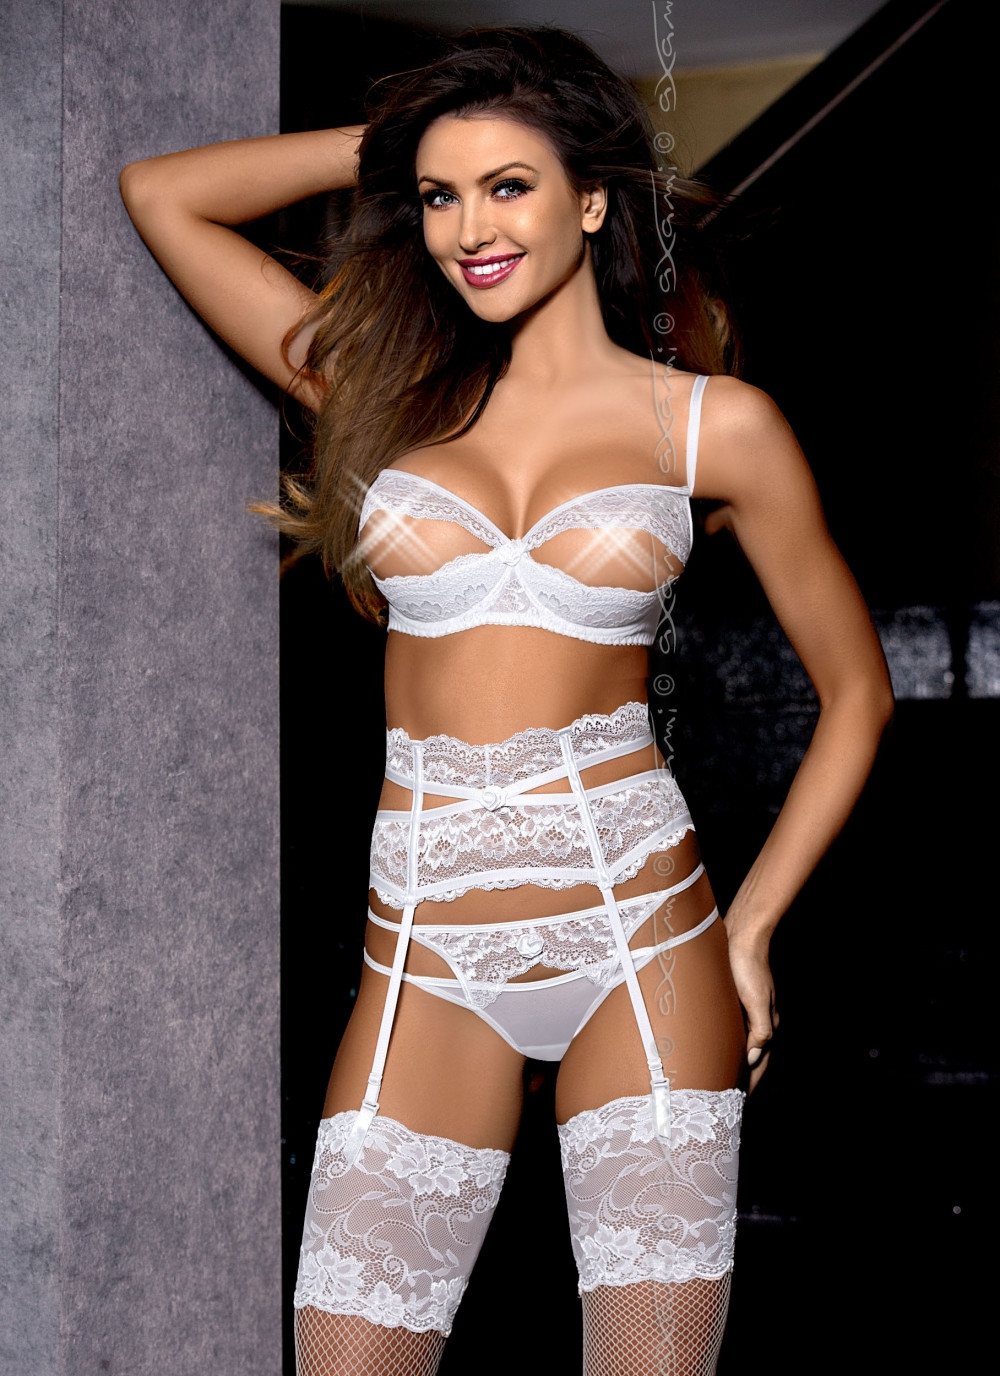 Soutien-gorge blanc Angelic Scent of a Woman - Axami  4a3077c213e